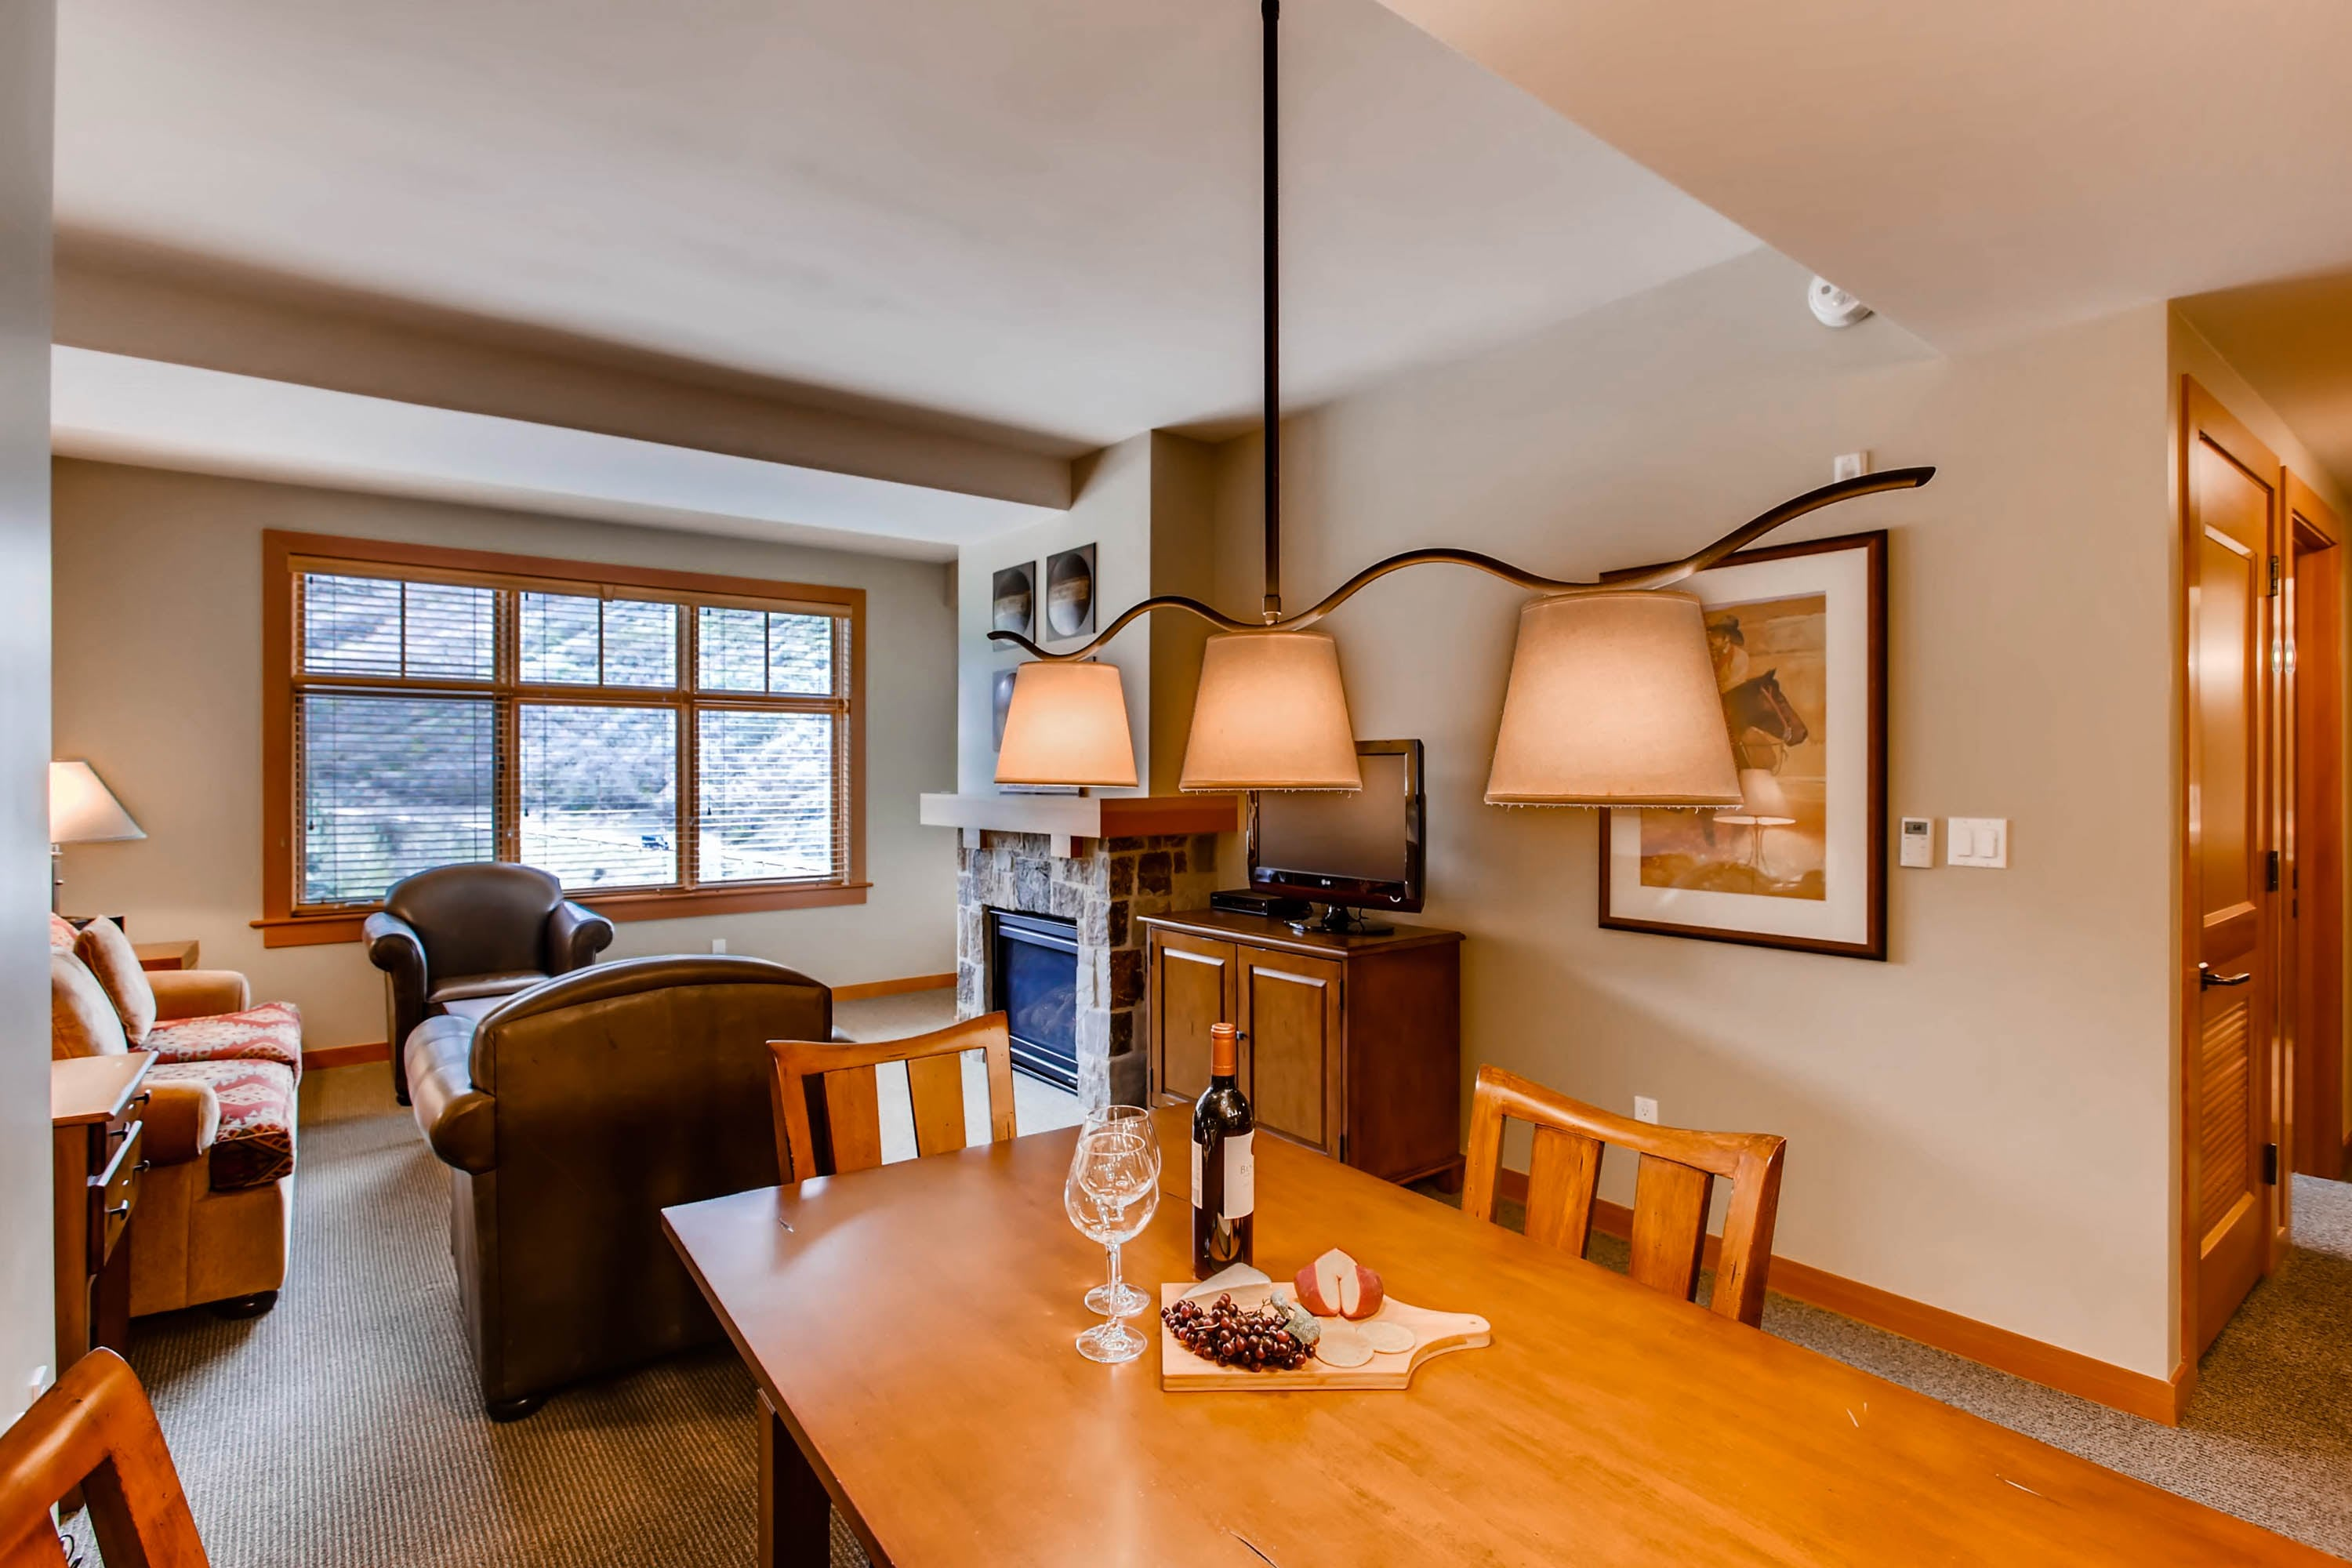 Best views from private condominum in Snowmass